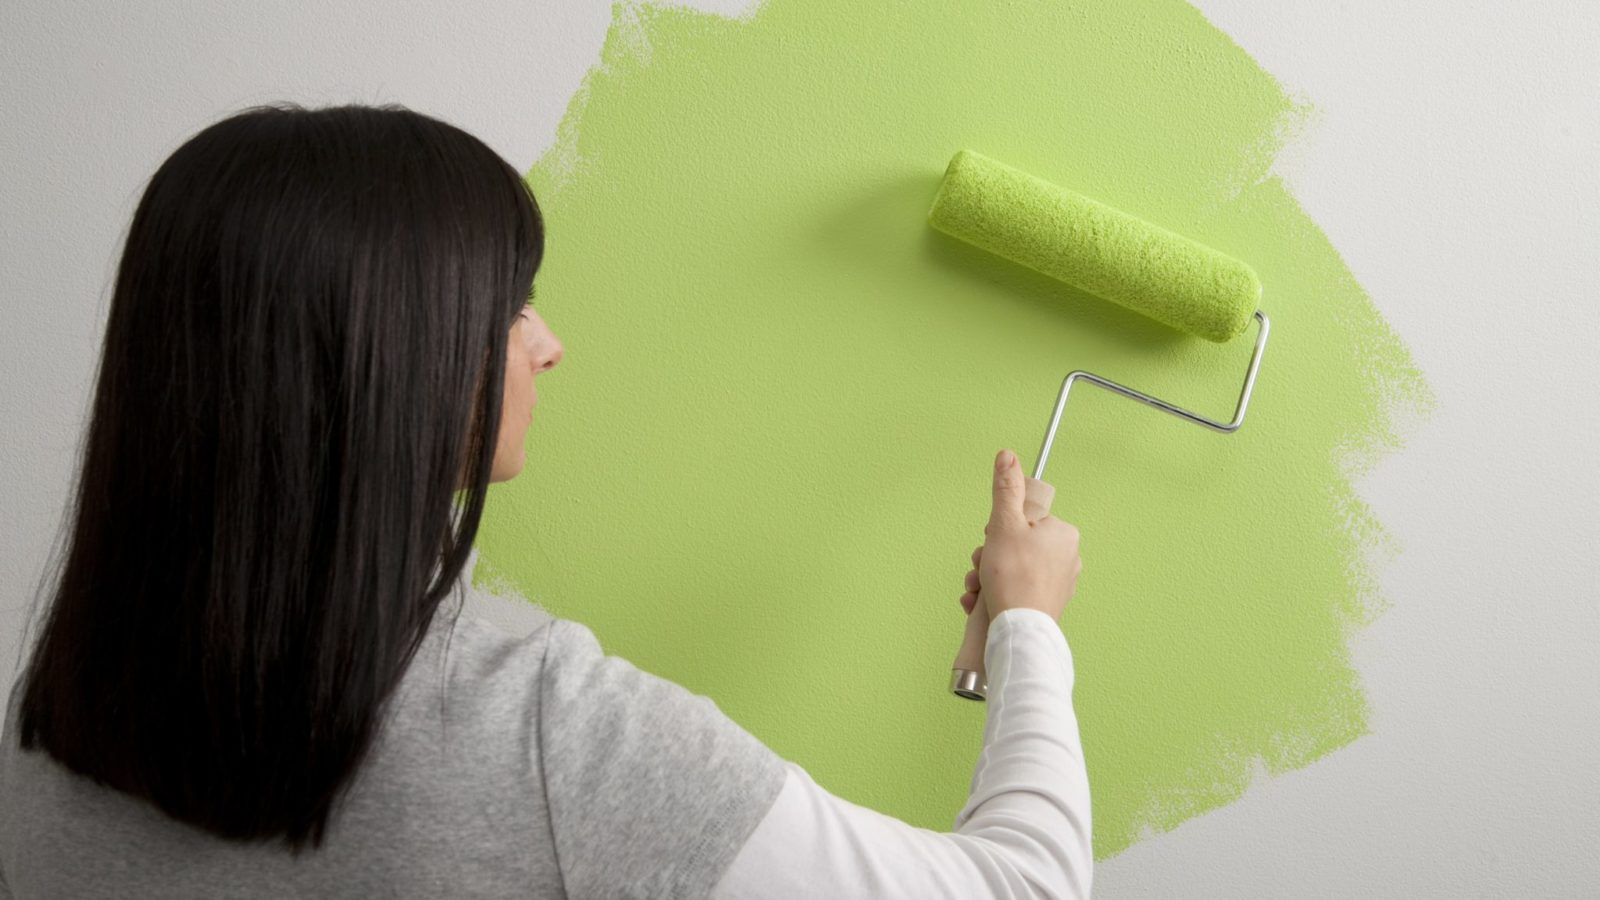 painting, change room dimensions with paint, how to make a small room look big with paint